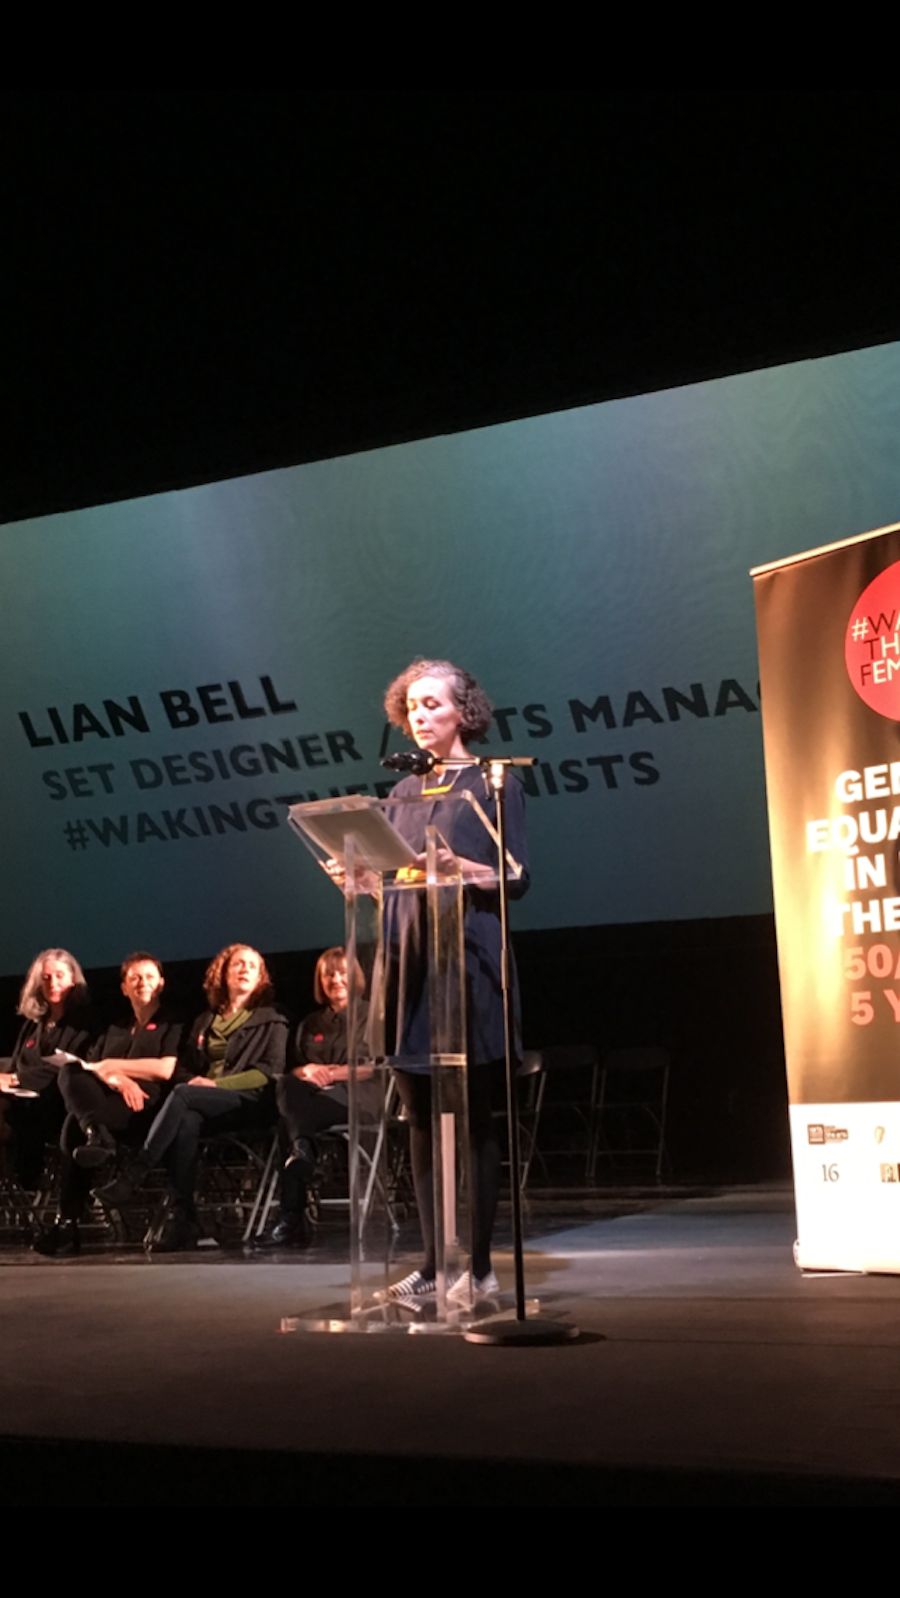 Liam Bell speaking at #wakingthefeminists